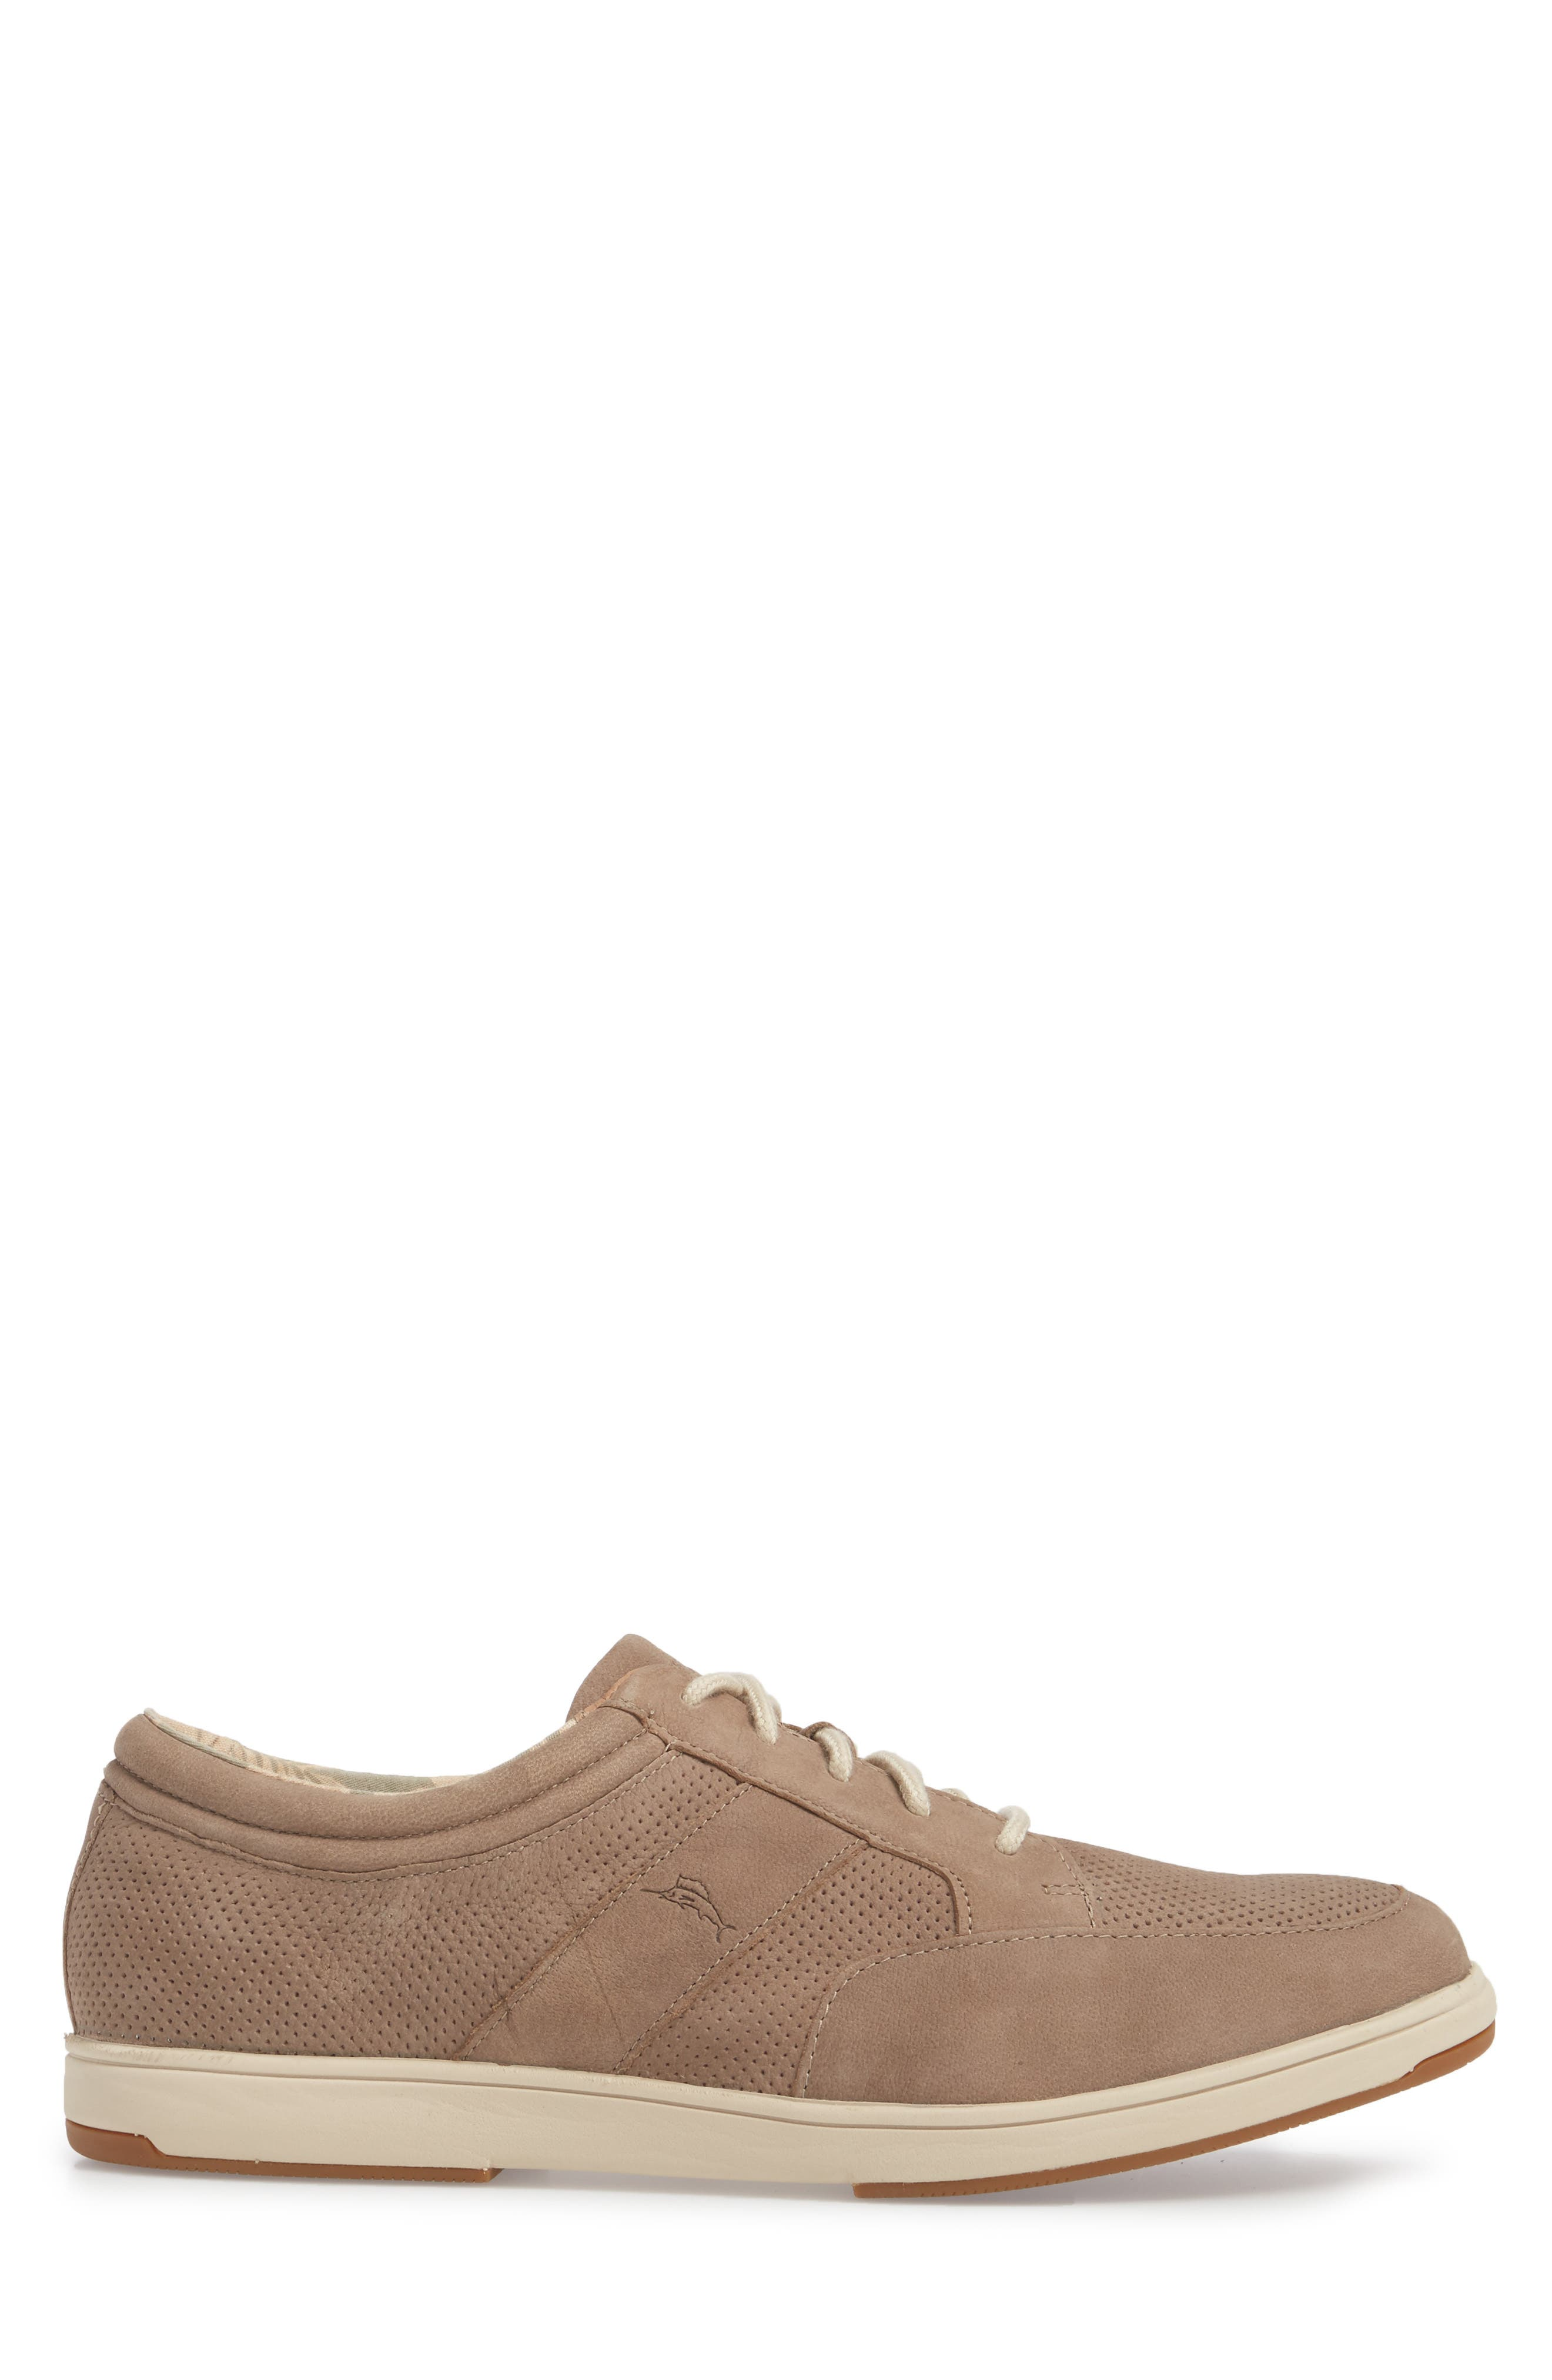 Caicos Authentic Low Top Sneaker,                             Alternate thumbnail 3, color,                             Taupe Leather